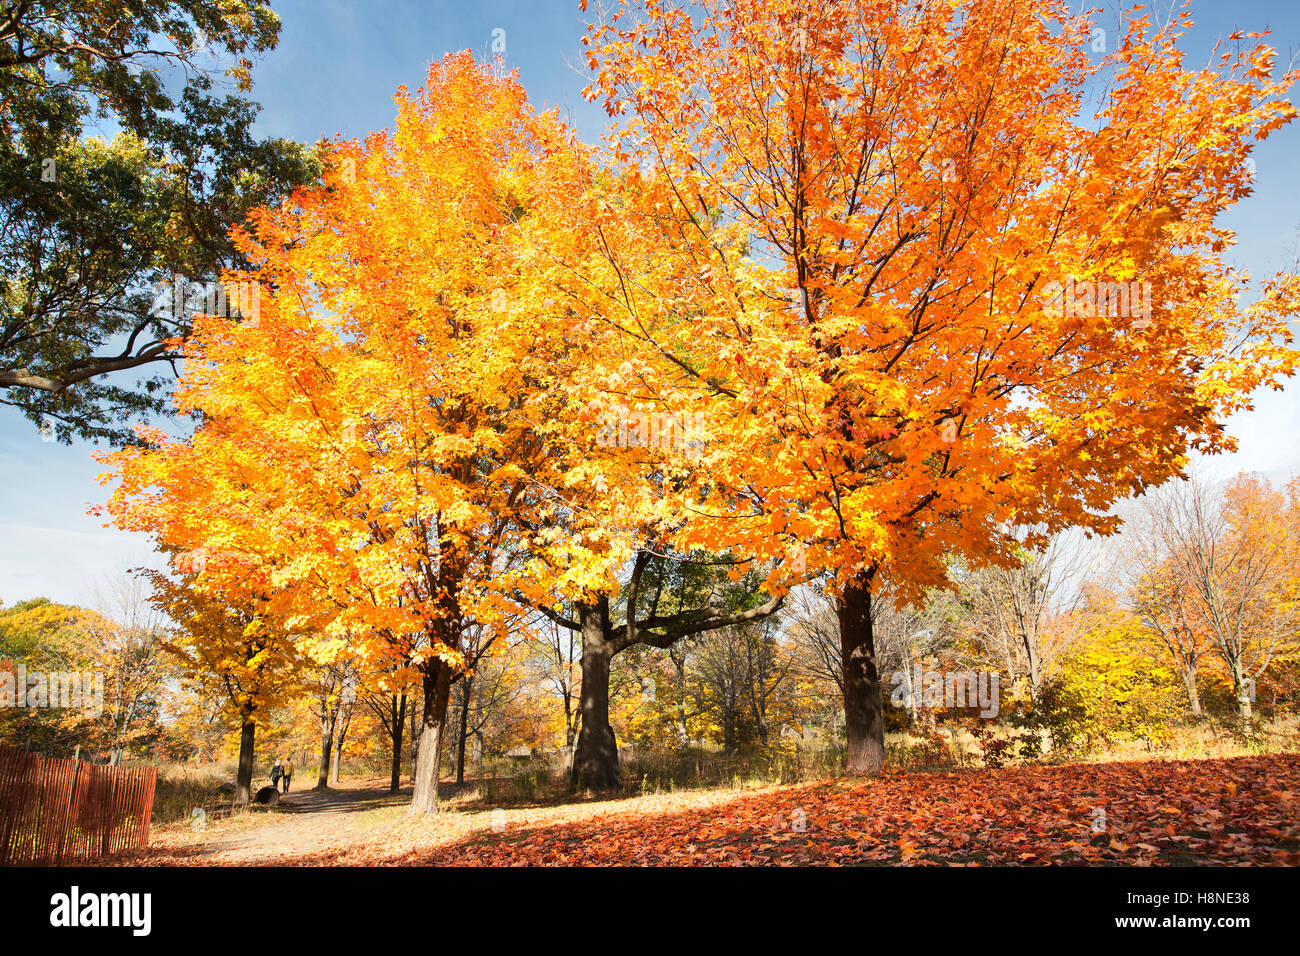 colorful maple trees in park during autumn fall season brightly